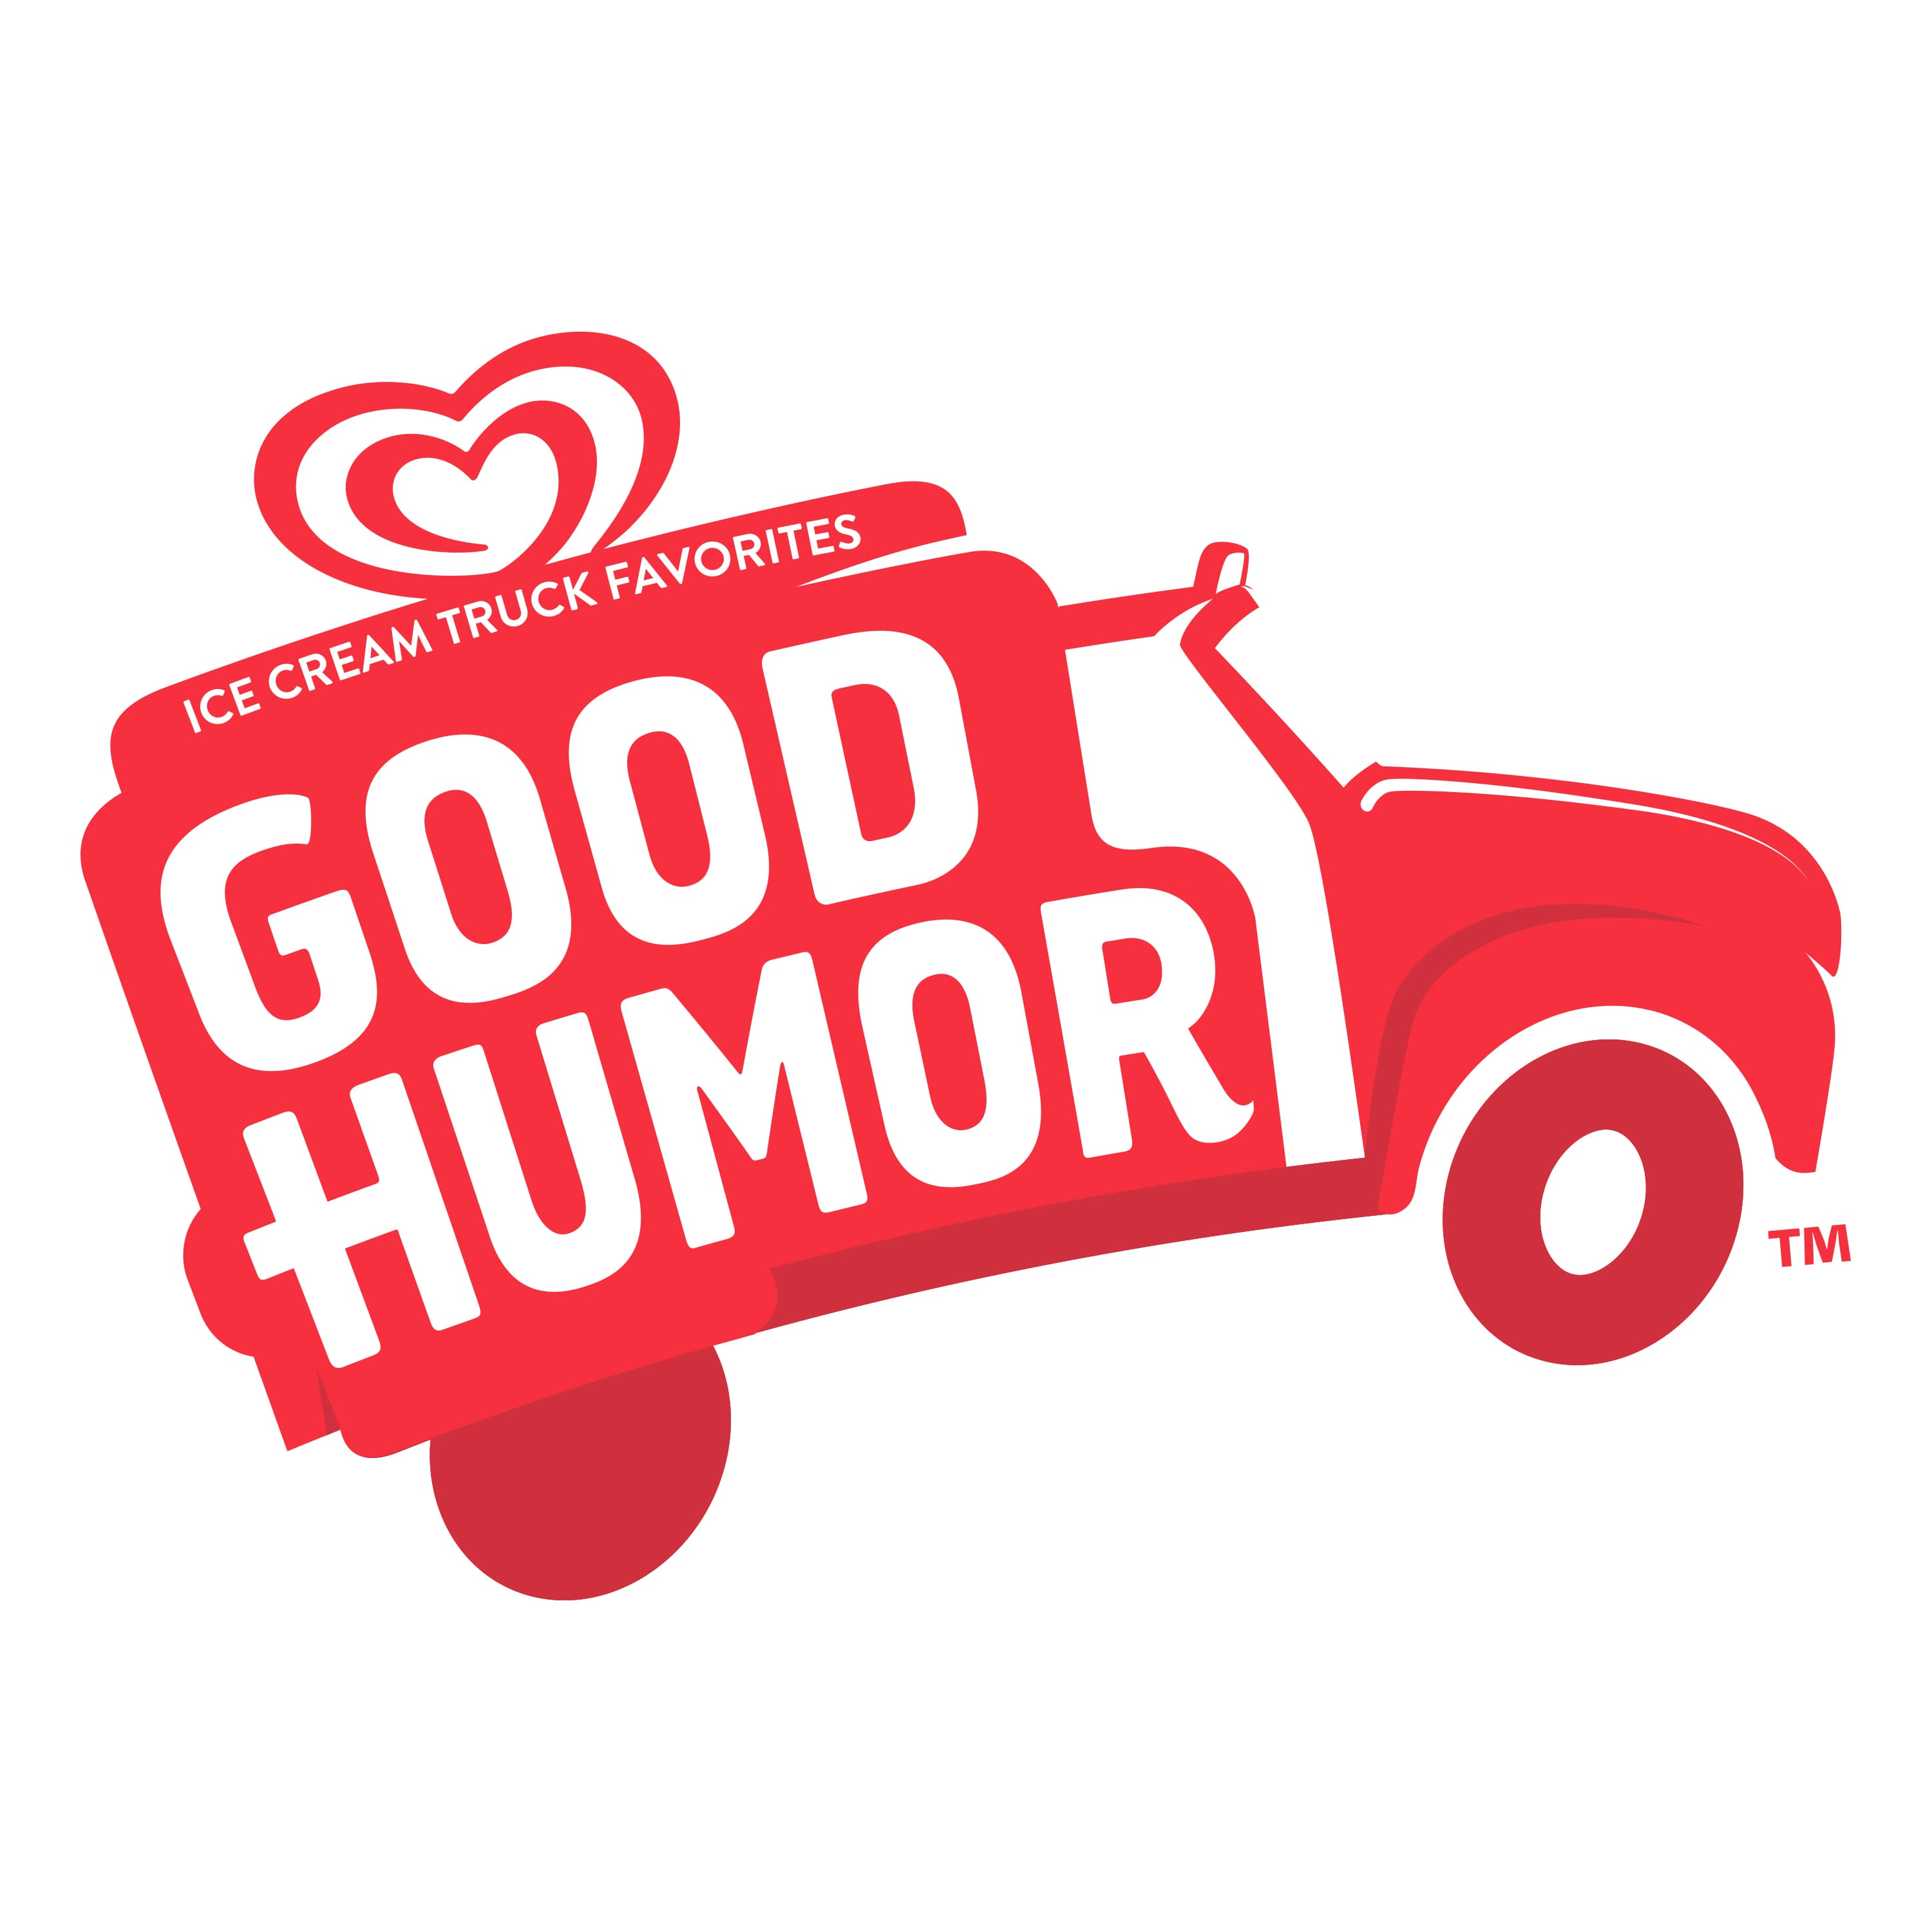 Ice Cream Heart Logo - Good Humor: Ice Cream Novelties & Treats